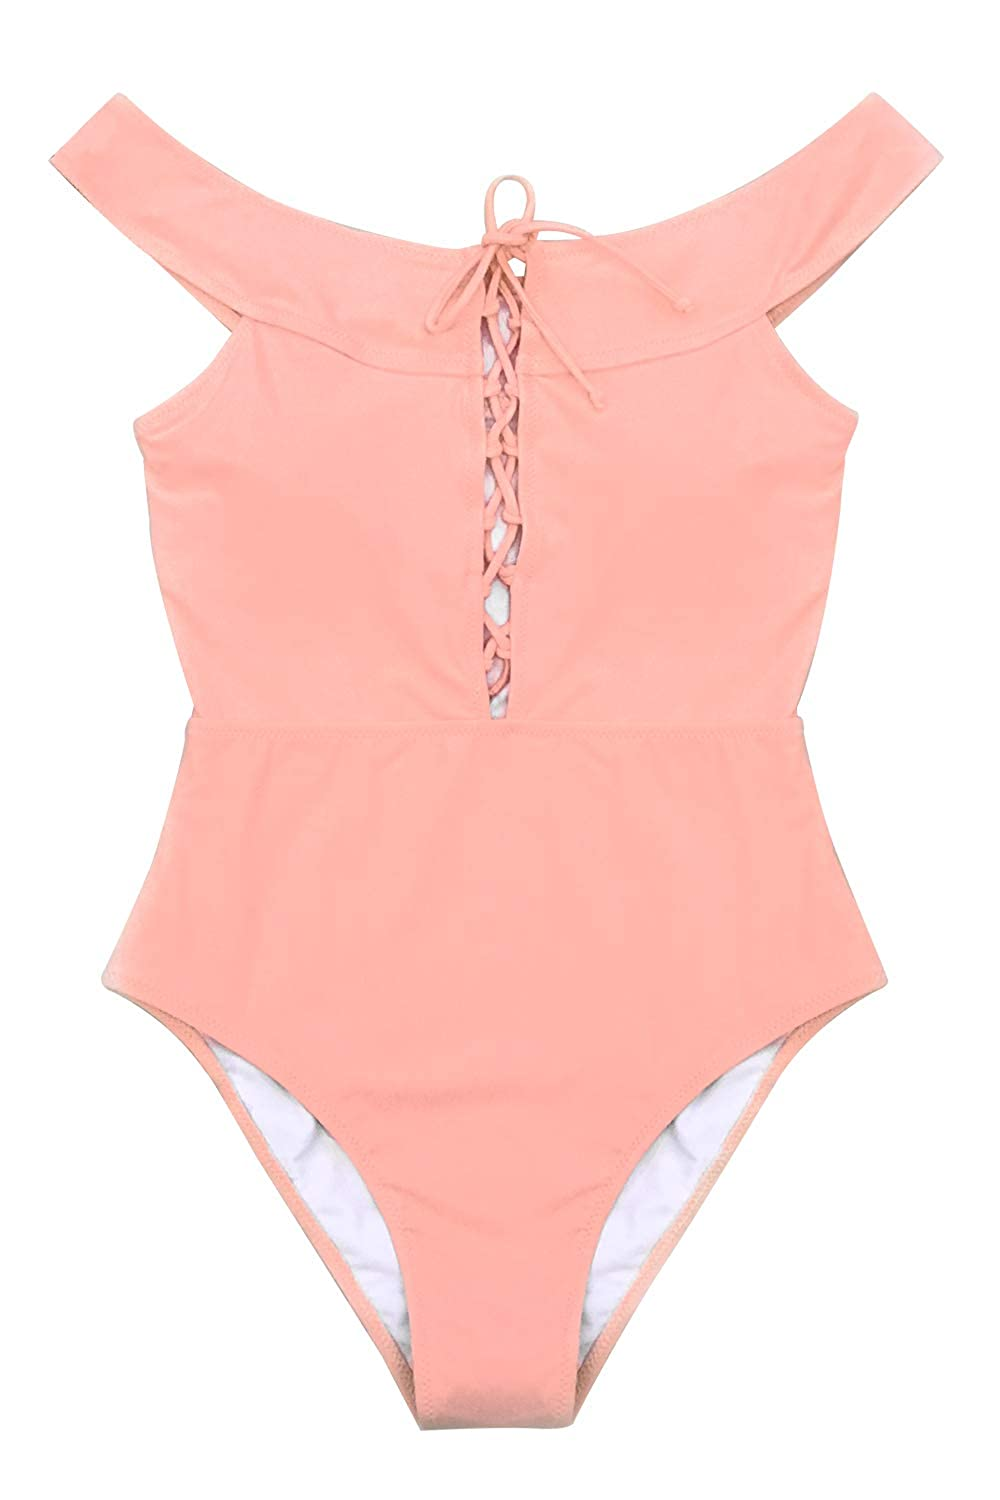 05835a7ab3634 CUPSHE Women's Peach Pink Solid Lace Up One Piece Swimsuit at Amazon  Women's Clothing store: